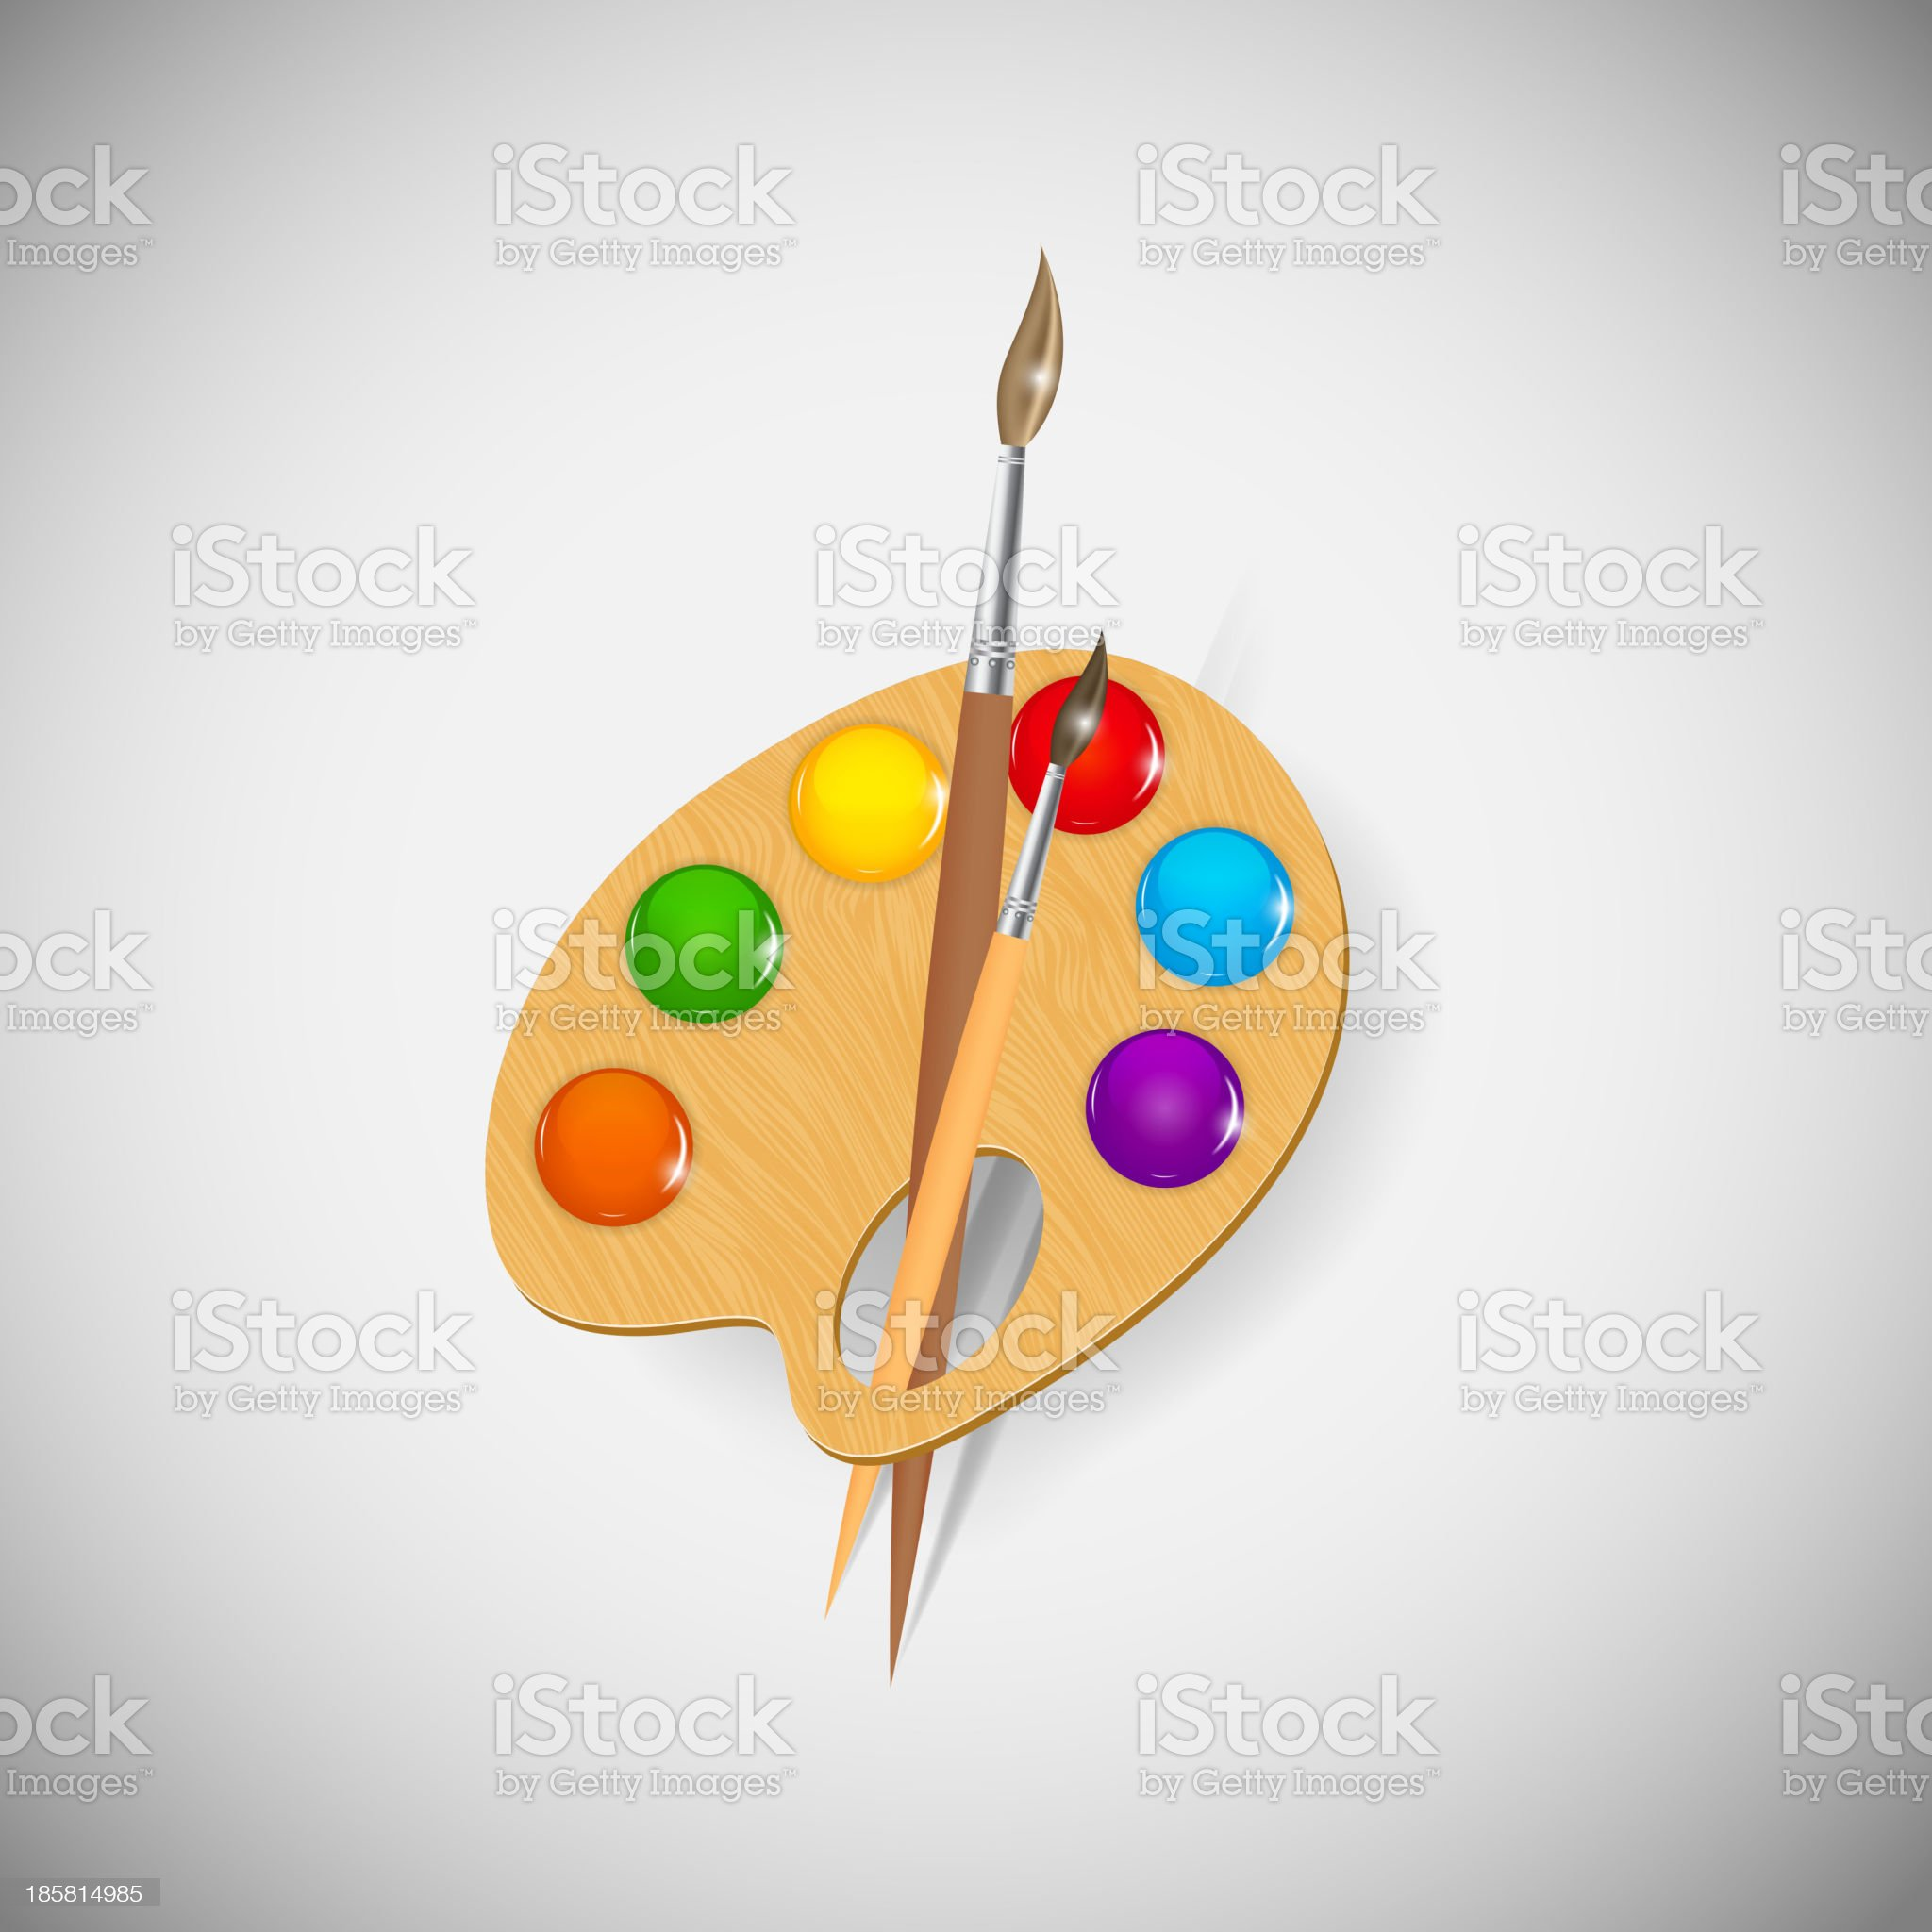 Paint application icons vector illustration royalty-free stock vector art